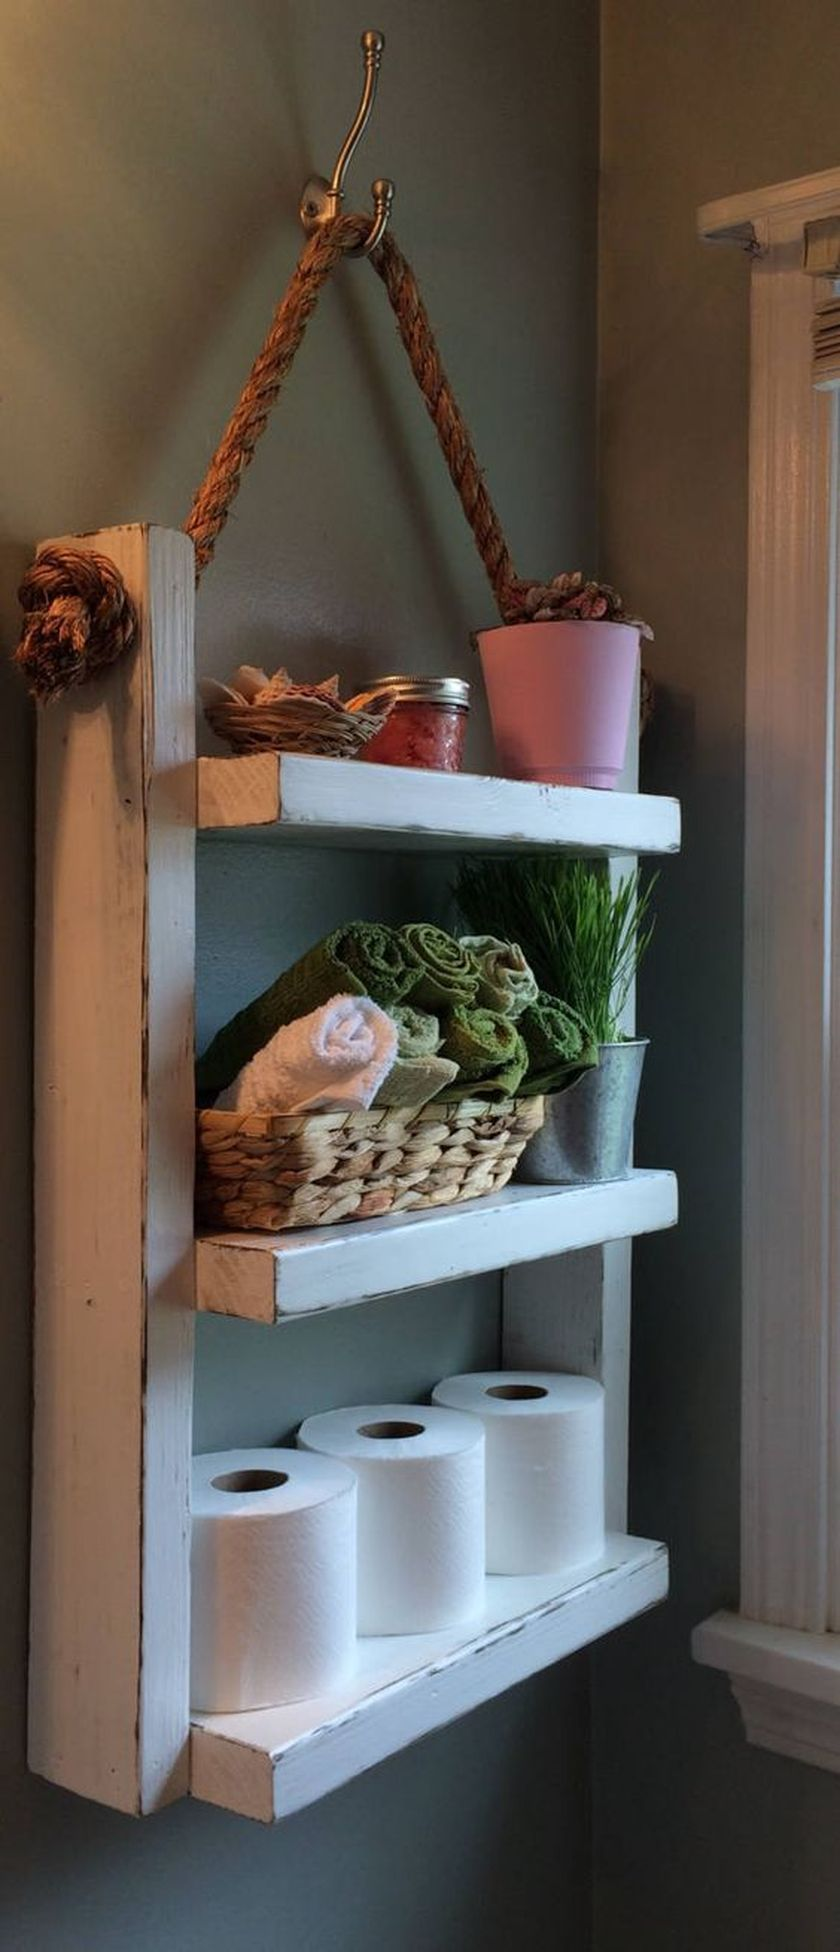 New 30 Rustic Country Bathroom Shelves Ideas that You Must Try https  QH34